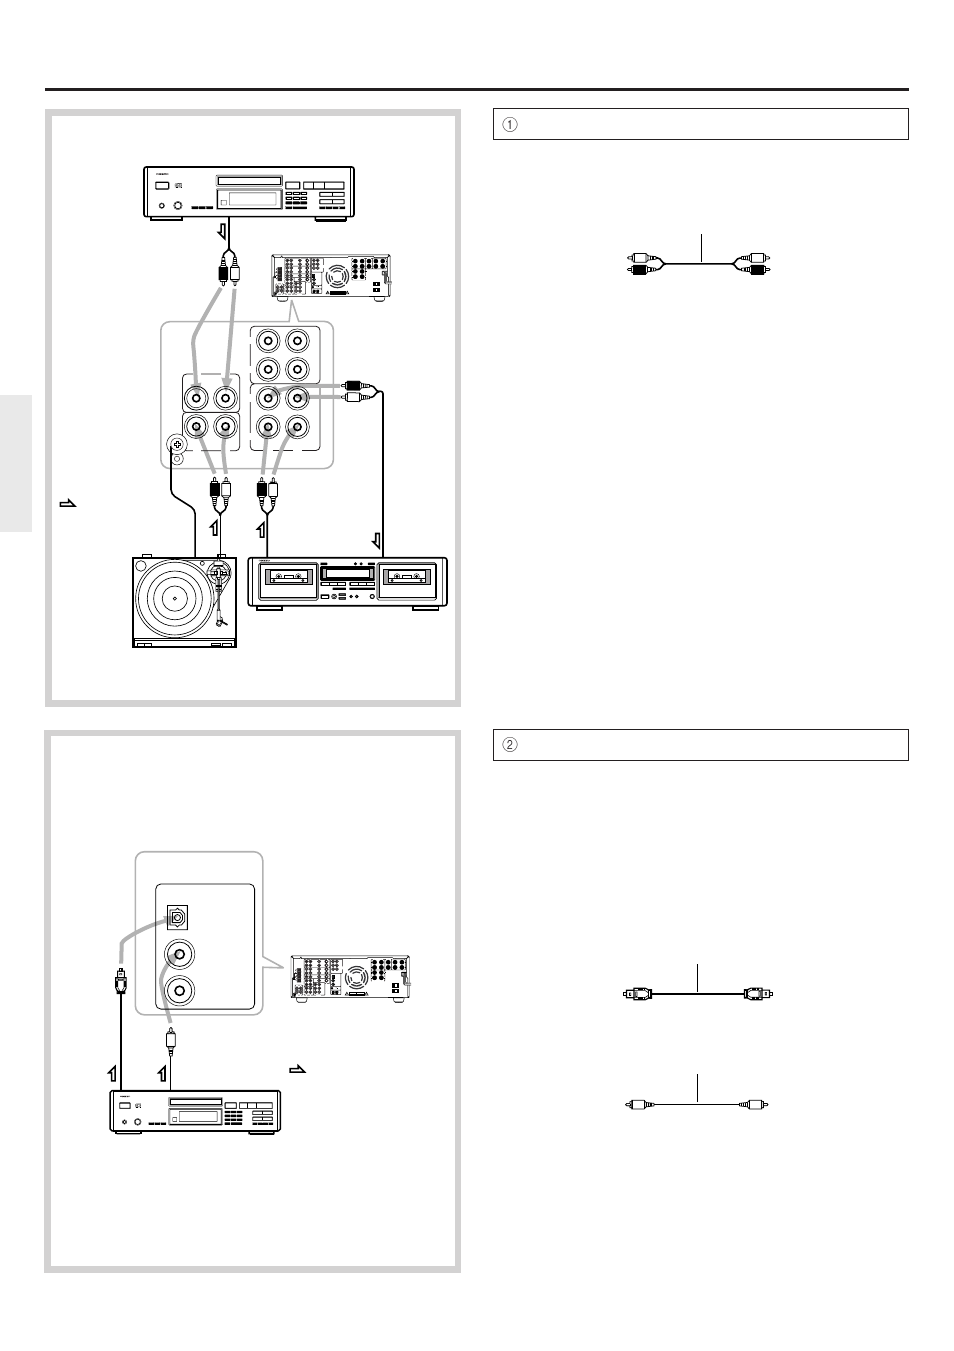 Connection | Onkyo TX-DS656 User Manual | Page 8 / 56 on cd player antenna, cd player installation, cd player transformer, cd player controls, cd player motor, cd player clock, cd player radio, cd player speaker, cd player ford, cd player wire harness, cd player parts, cd player toyota, cd player power supply, cd player repair, cd player circuit, cd player block diagram, cd player cabinet, cd player introduction, cd player cover, cd player serial number,